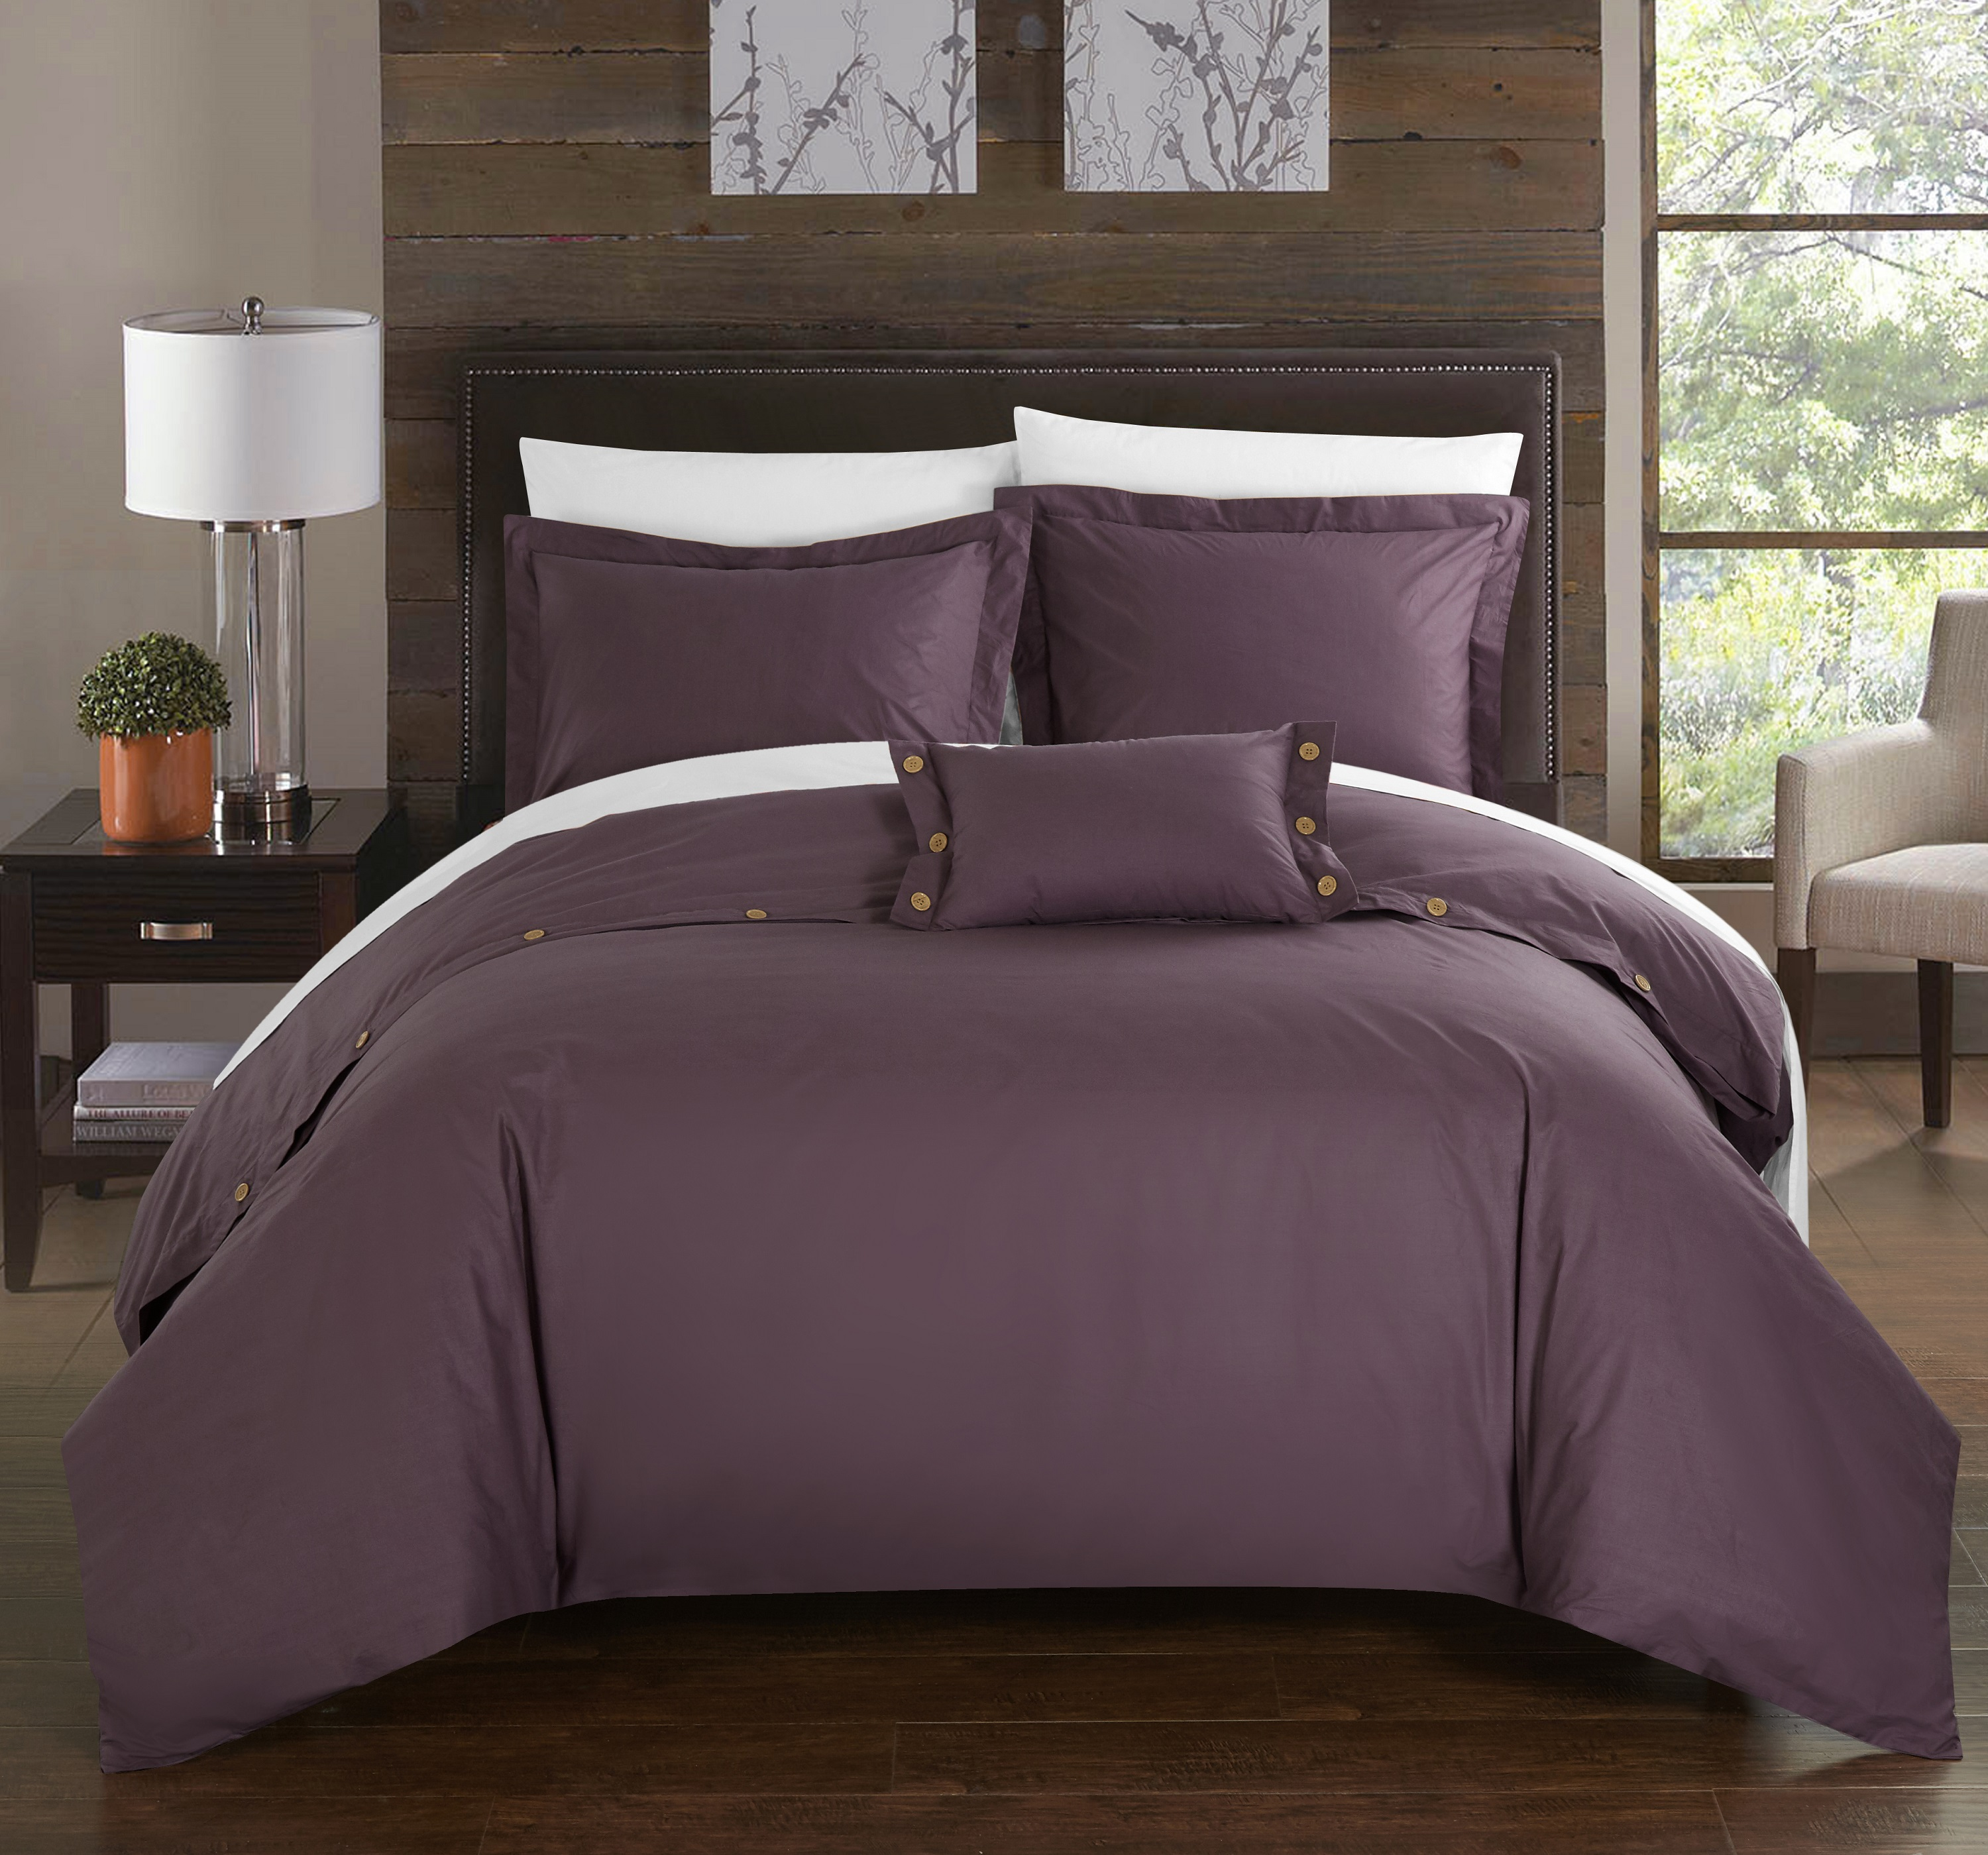 Chic Home 4-Piece Astrid 200 Thread Count COMBED FINISH 100% Cotton Twill Weave Decorative Button Closure Detail Queen Duvet Cover Set Purple Shams and Decorative Pillows included